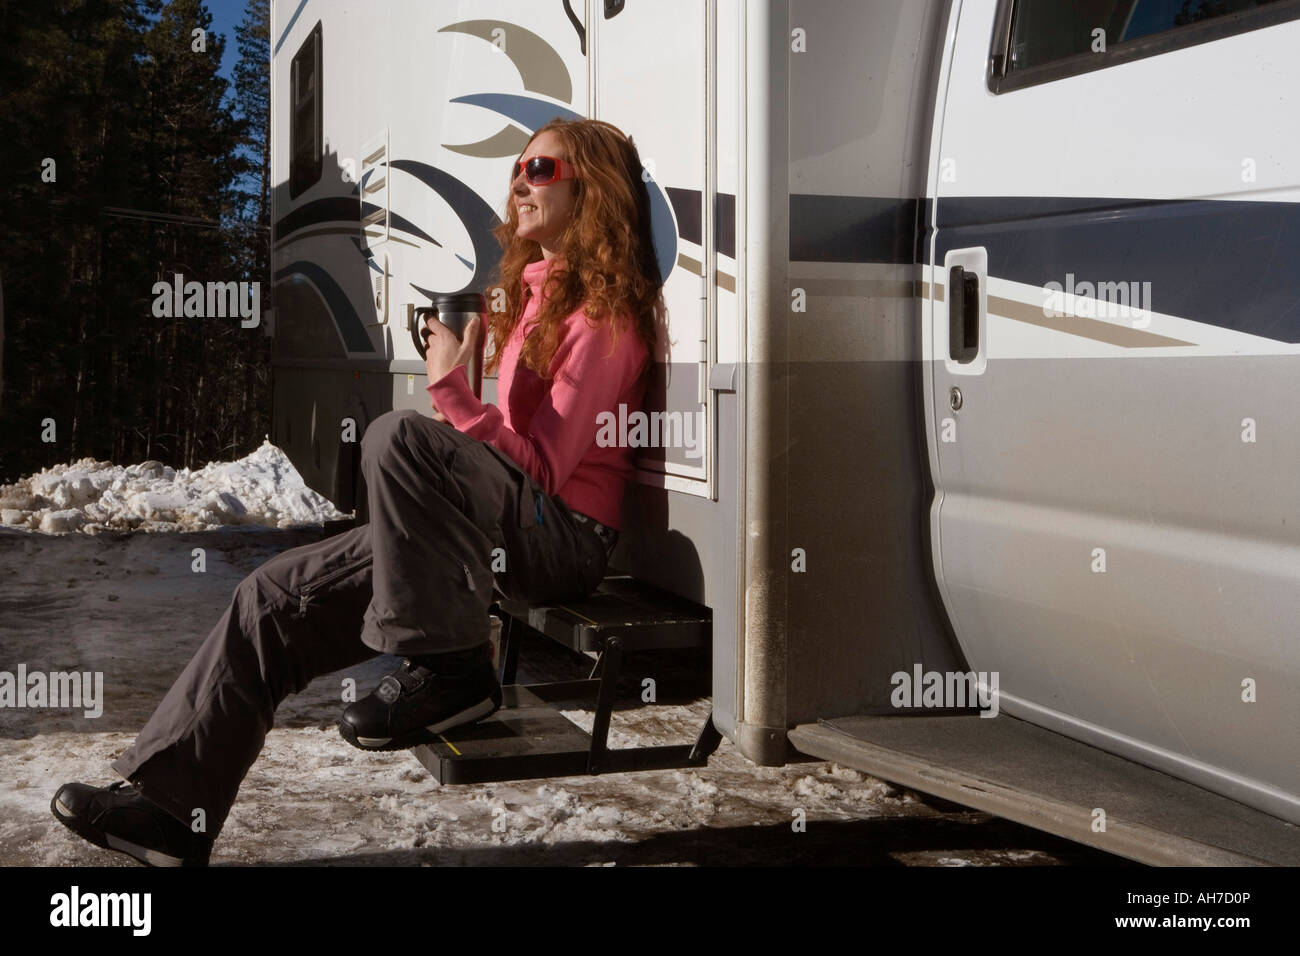 Young woman sitting on the steps of a recreational vehicle - Stock Image